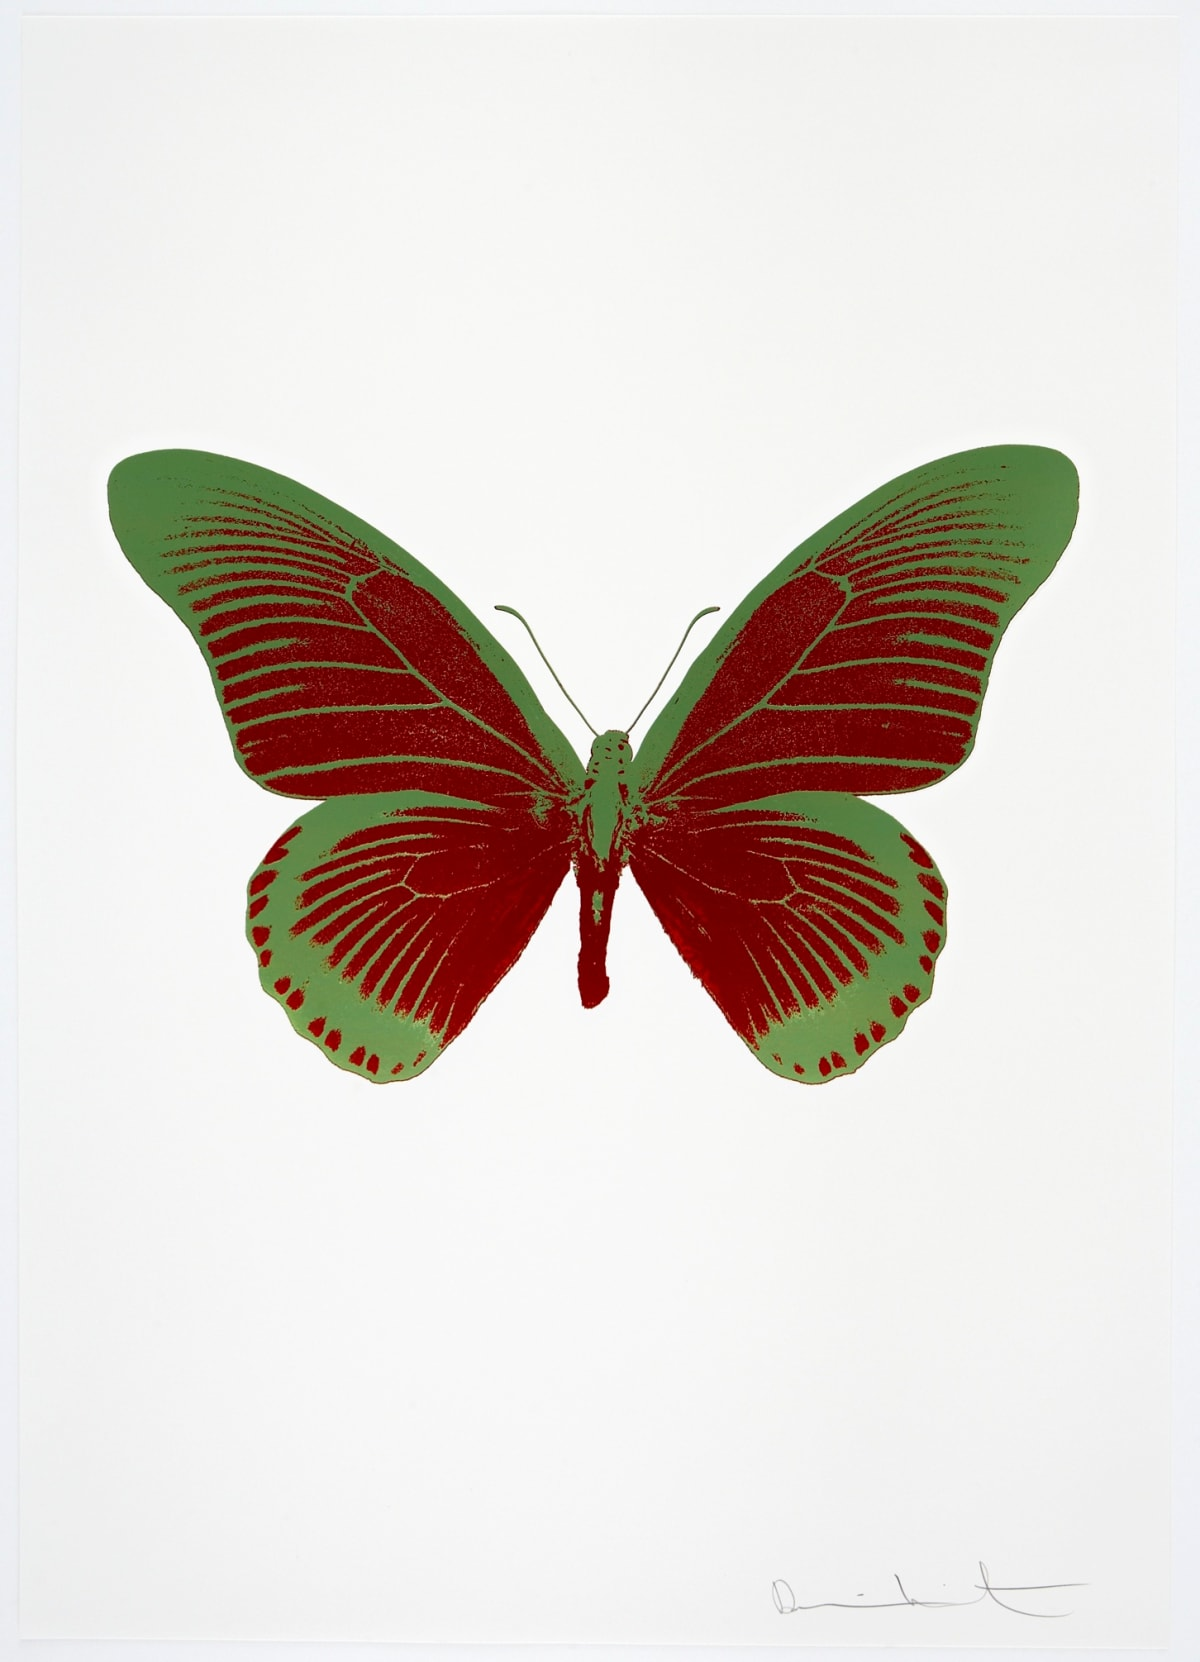 Damien Hirst The Souls IV - Chilli Red/Leaf Green, 2010 2 colour foil block on 300gsm Arches 88 archival paper. Signed and numbered. Published by Paul Stolper and Other Criteria 72 x 51cm OC8005 / 1418-28 Edition of 15